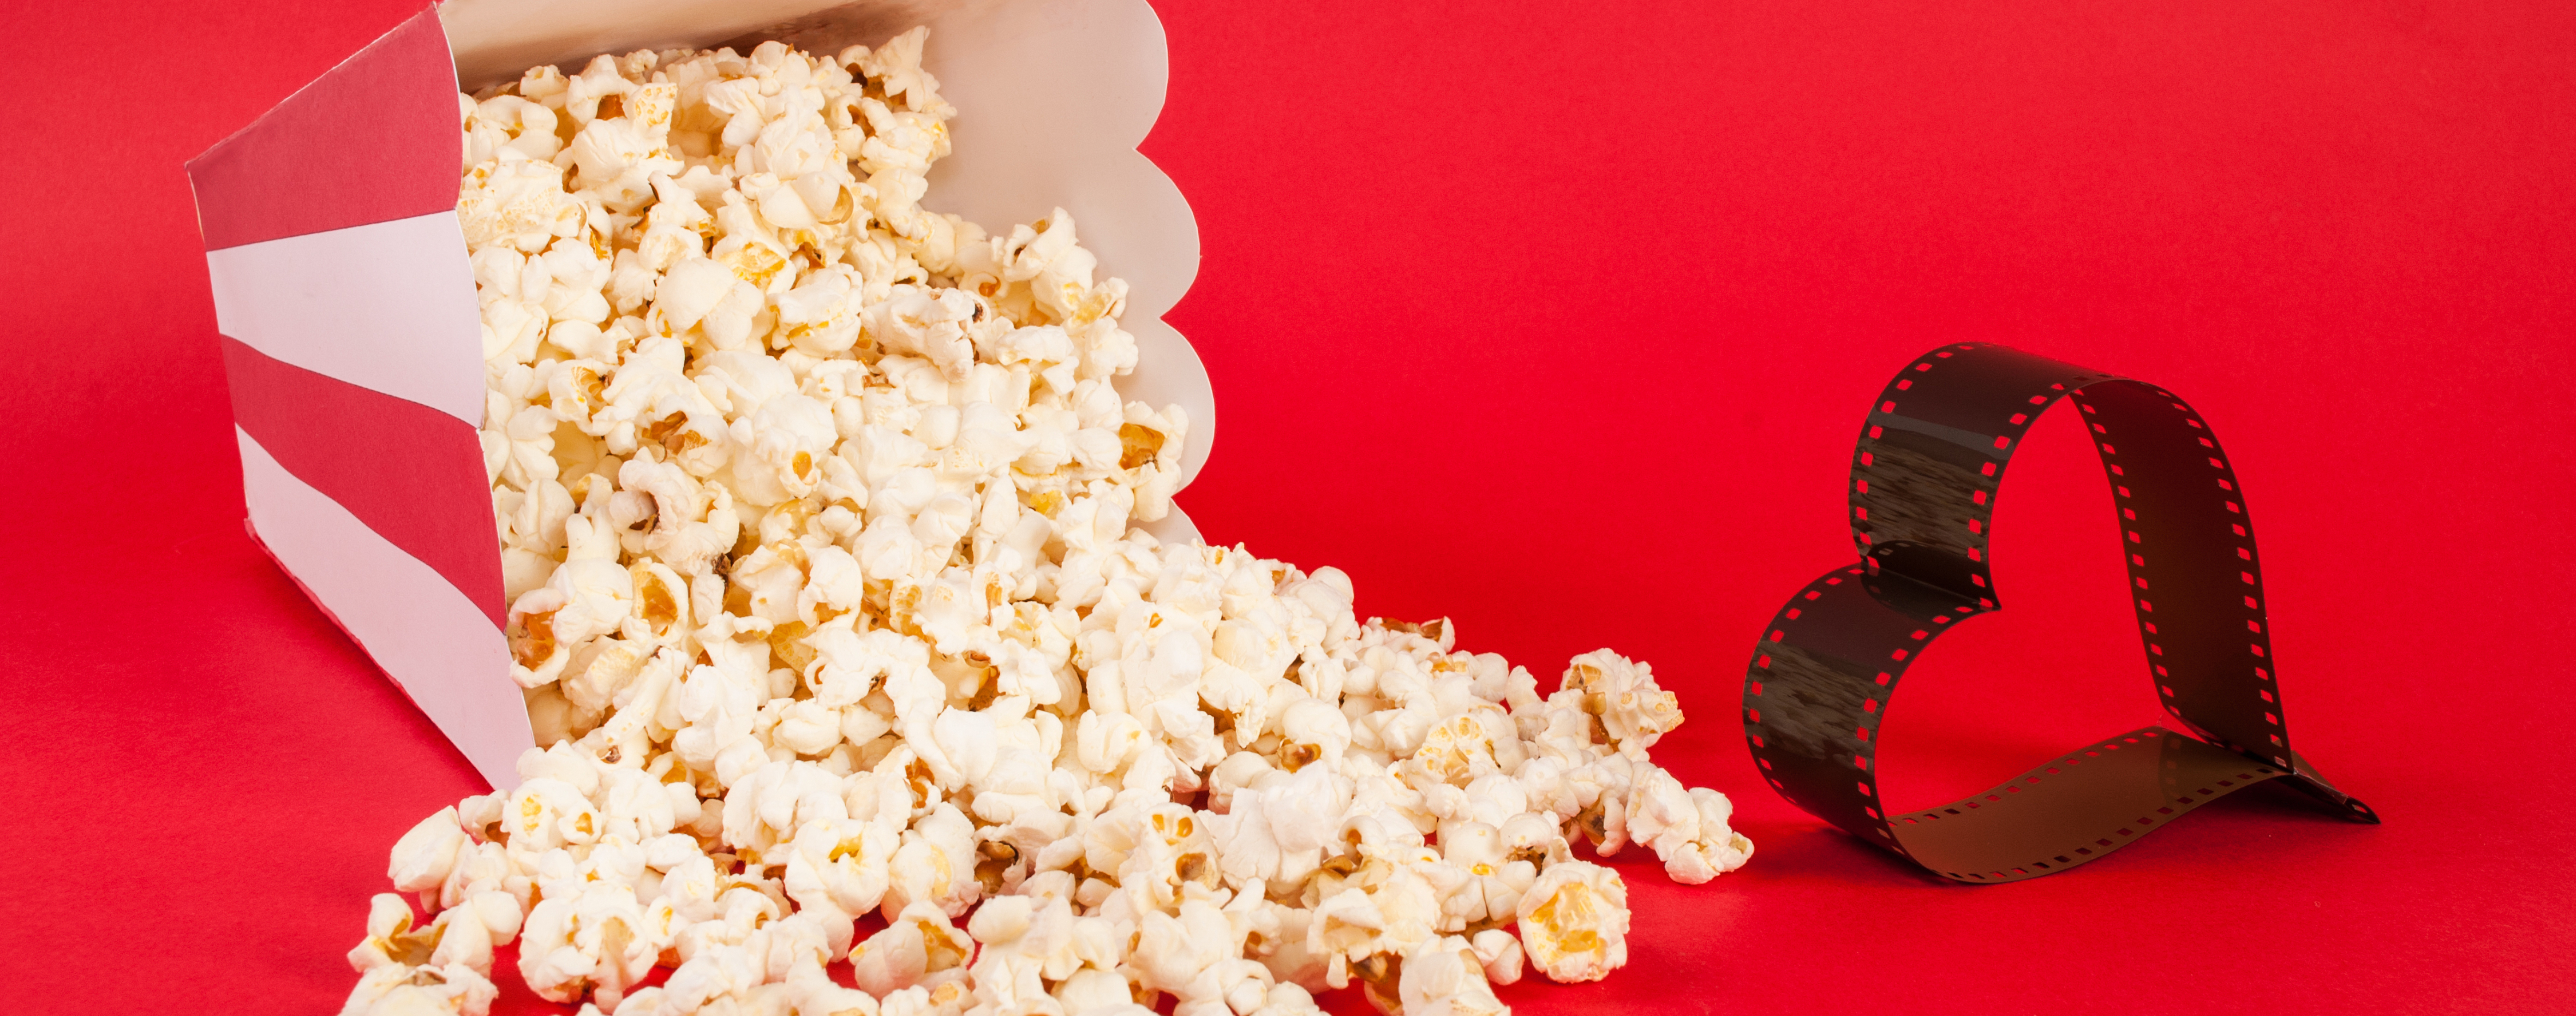 The 35 Best Chick Flicks And Rom Coms Usdish Popcorn On Pinterest Short Circuit 2 Princess Bride Movies